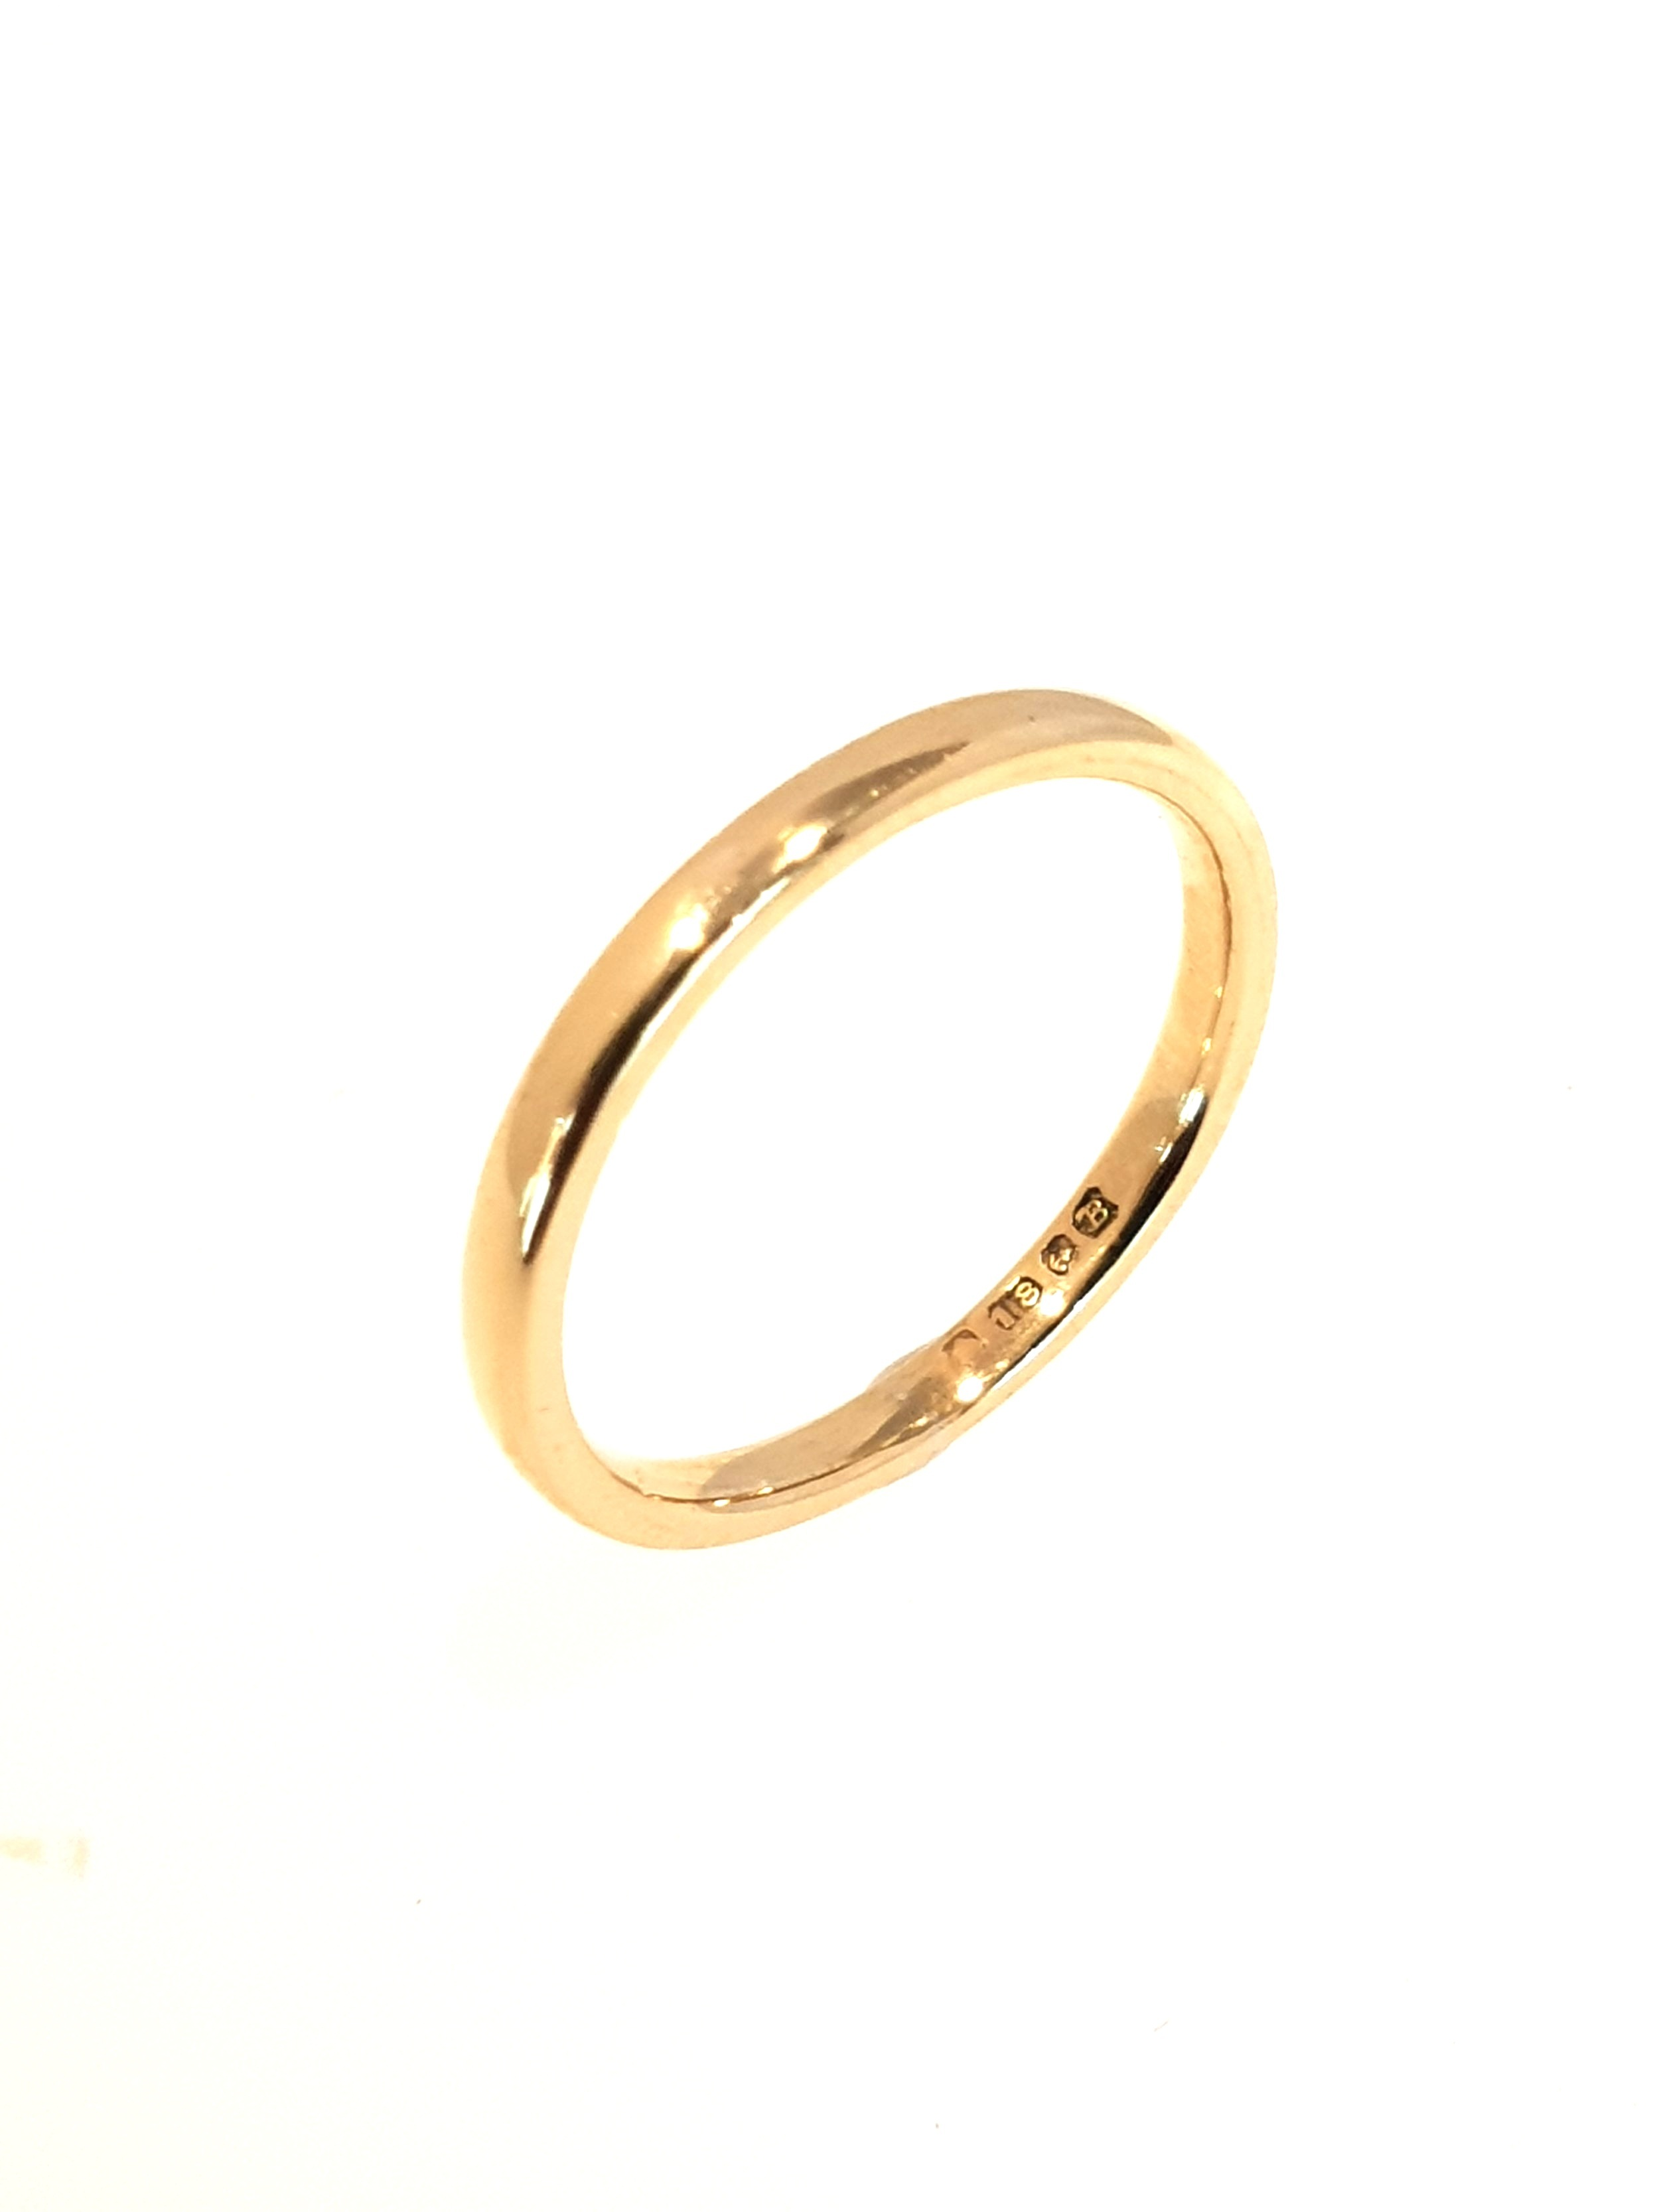 18ct Yellow Gold Narrow Band   Stock Code: Y833  New Price: £270   Pre-Owned Price: £135